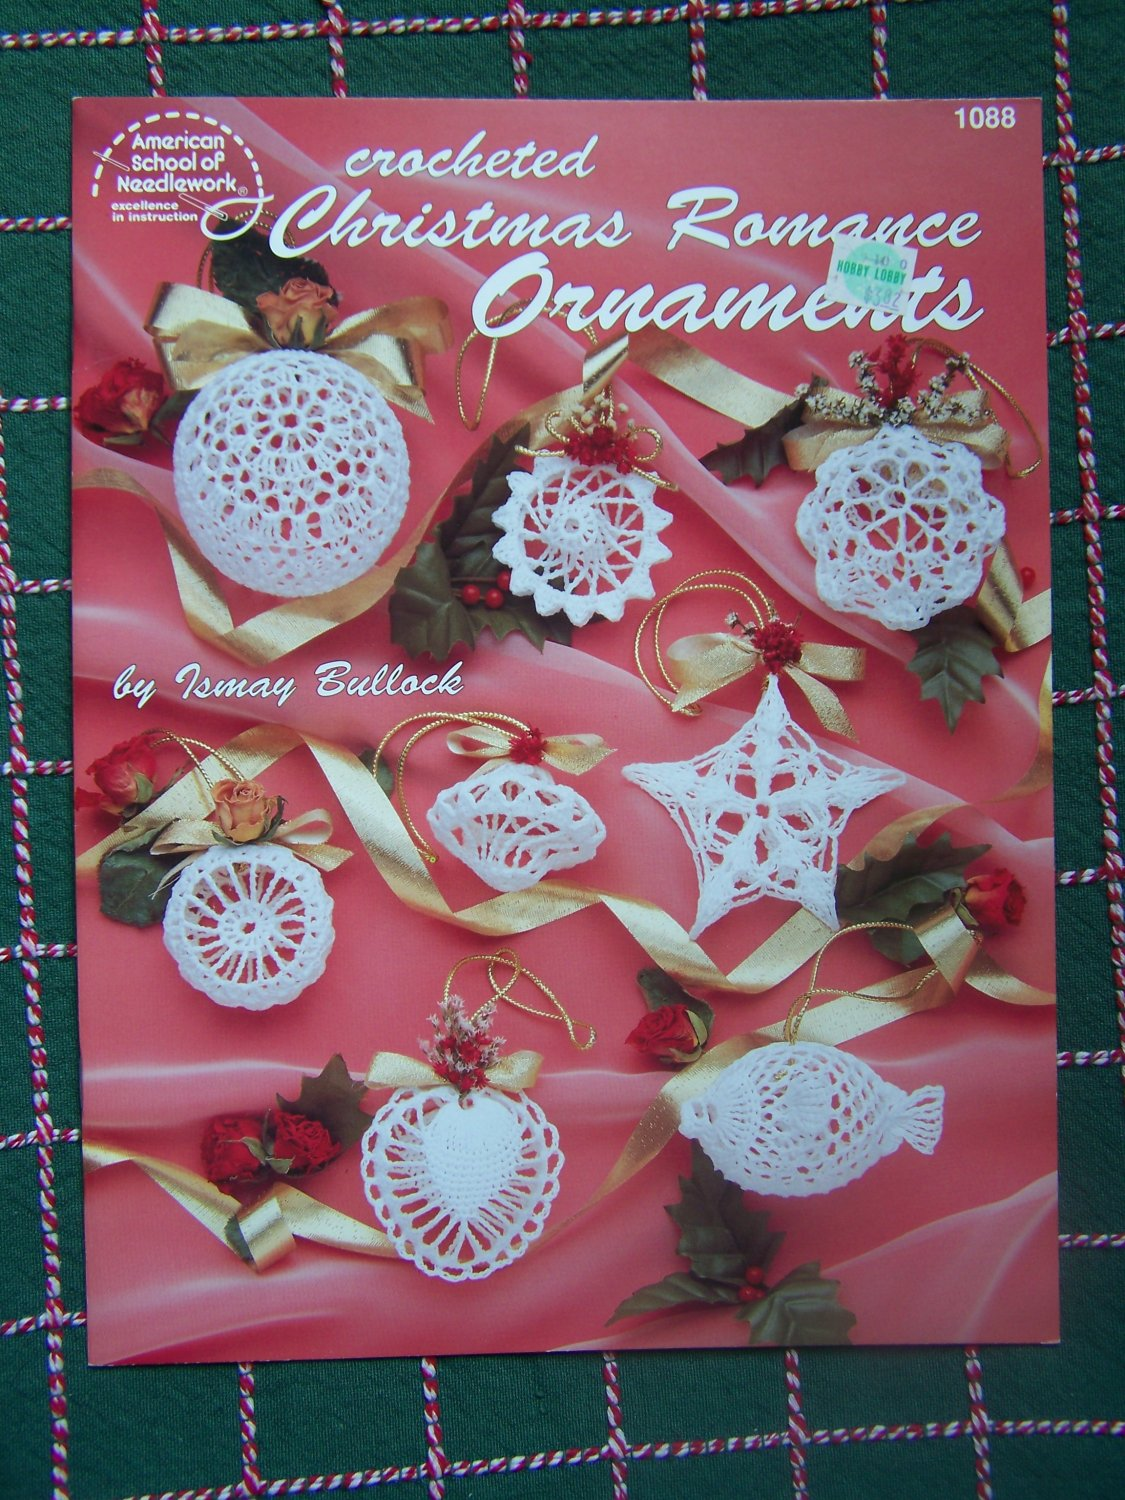 USA Free S&H 12 New Thread Crochet Christmas Ornament Patterns Filigree Lacy 1088